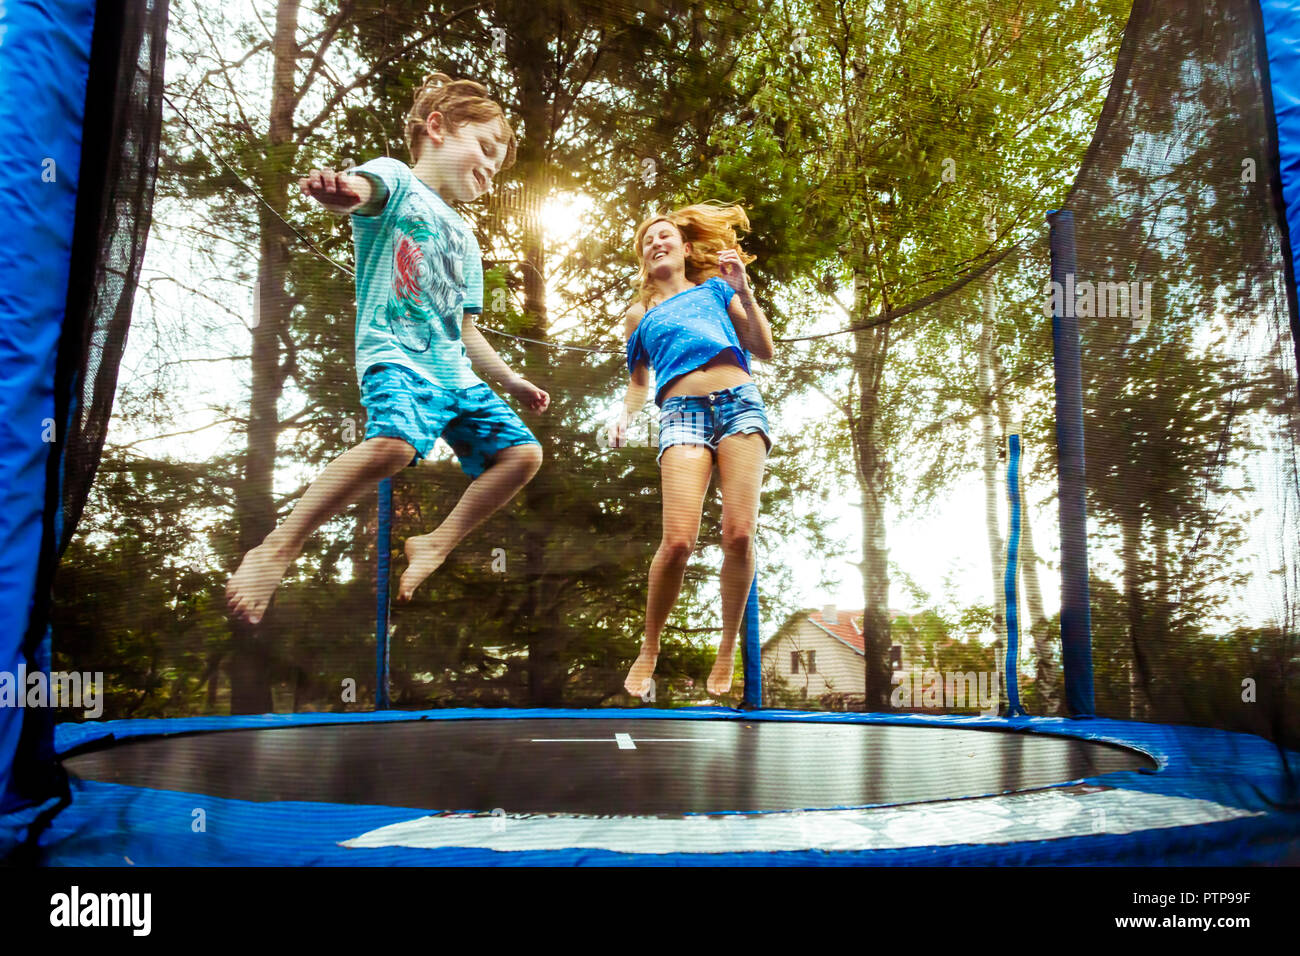 Single Parent Mother having fun with her son on the trampoline - Stock Image